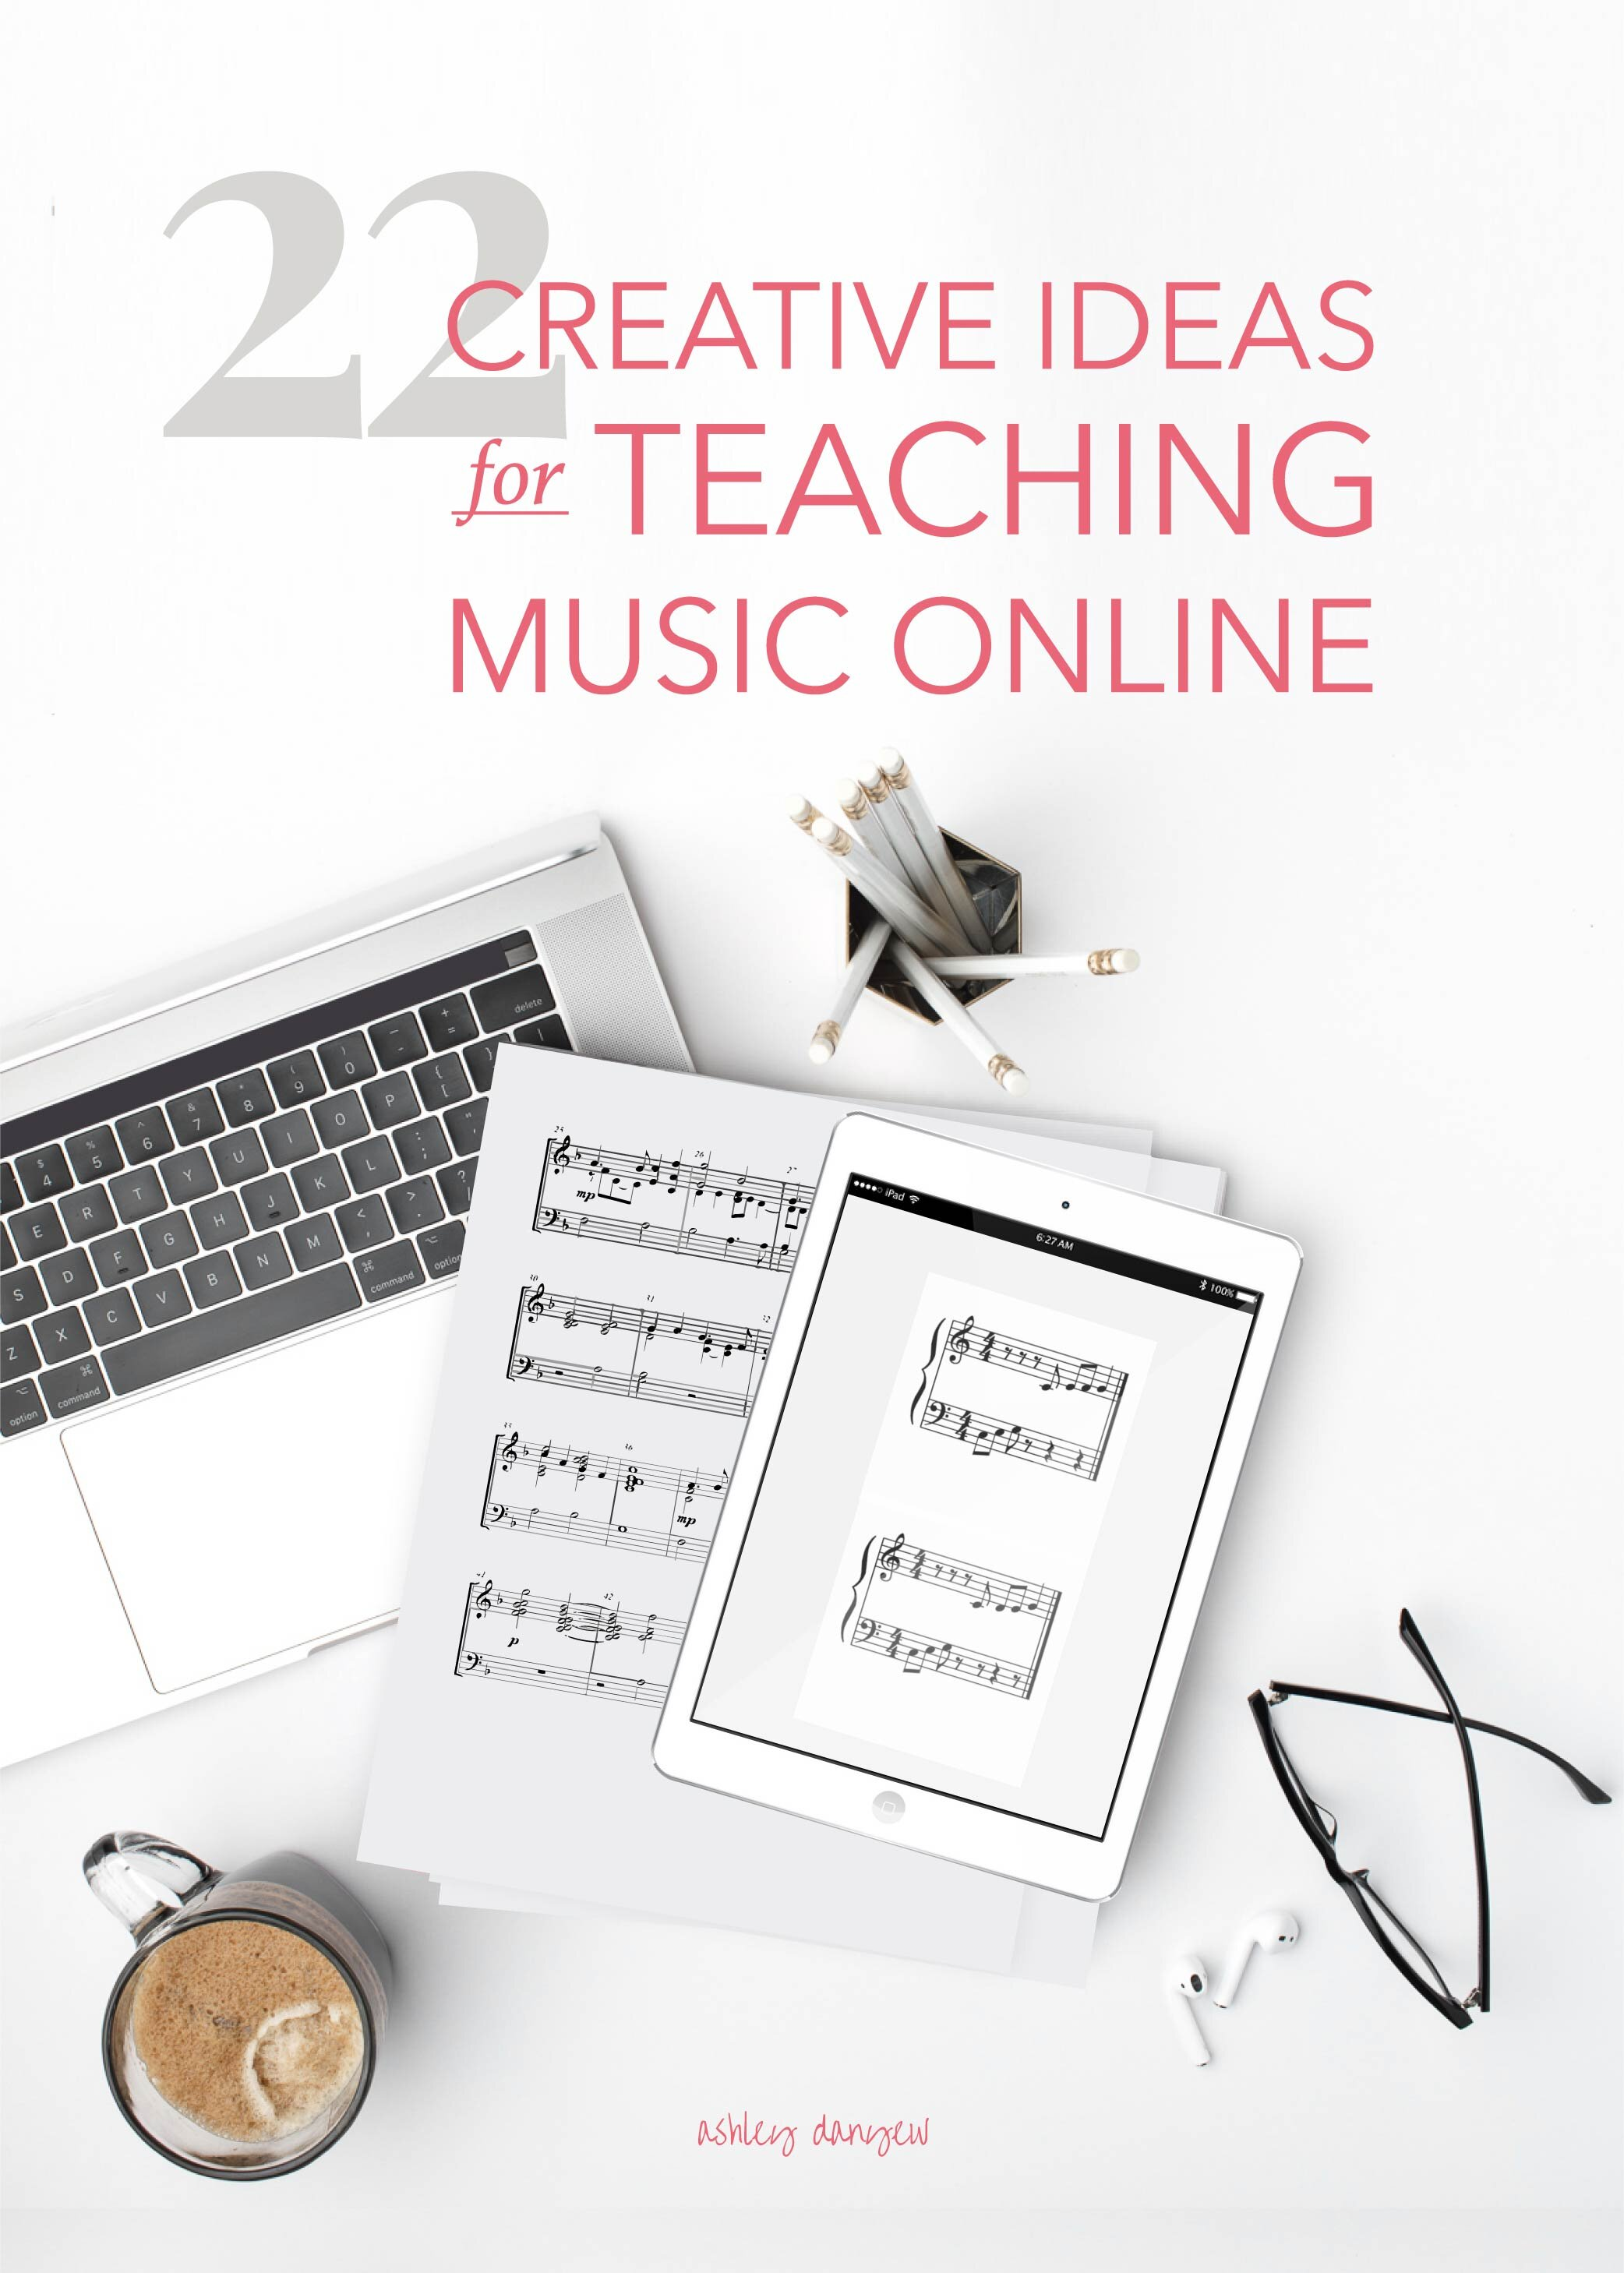 22 Creative Ideas for Teaching Music Online (for All Ages)   Ashley Danyew [ 2917 x 2084 Pixel ]